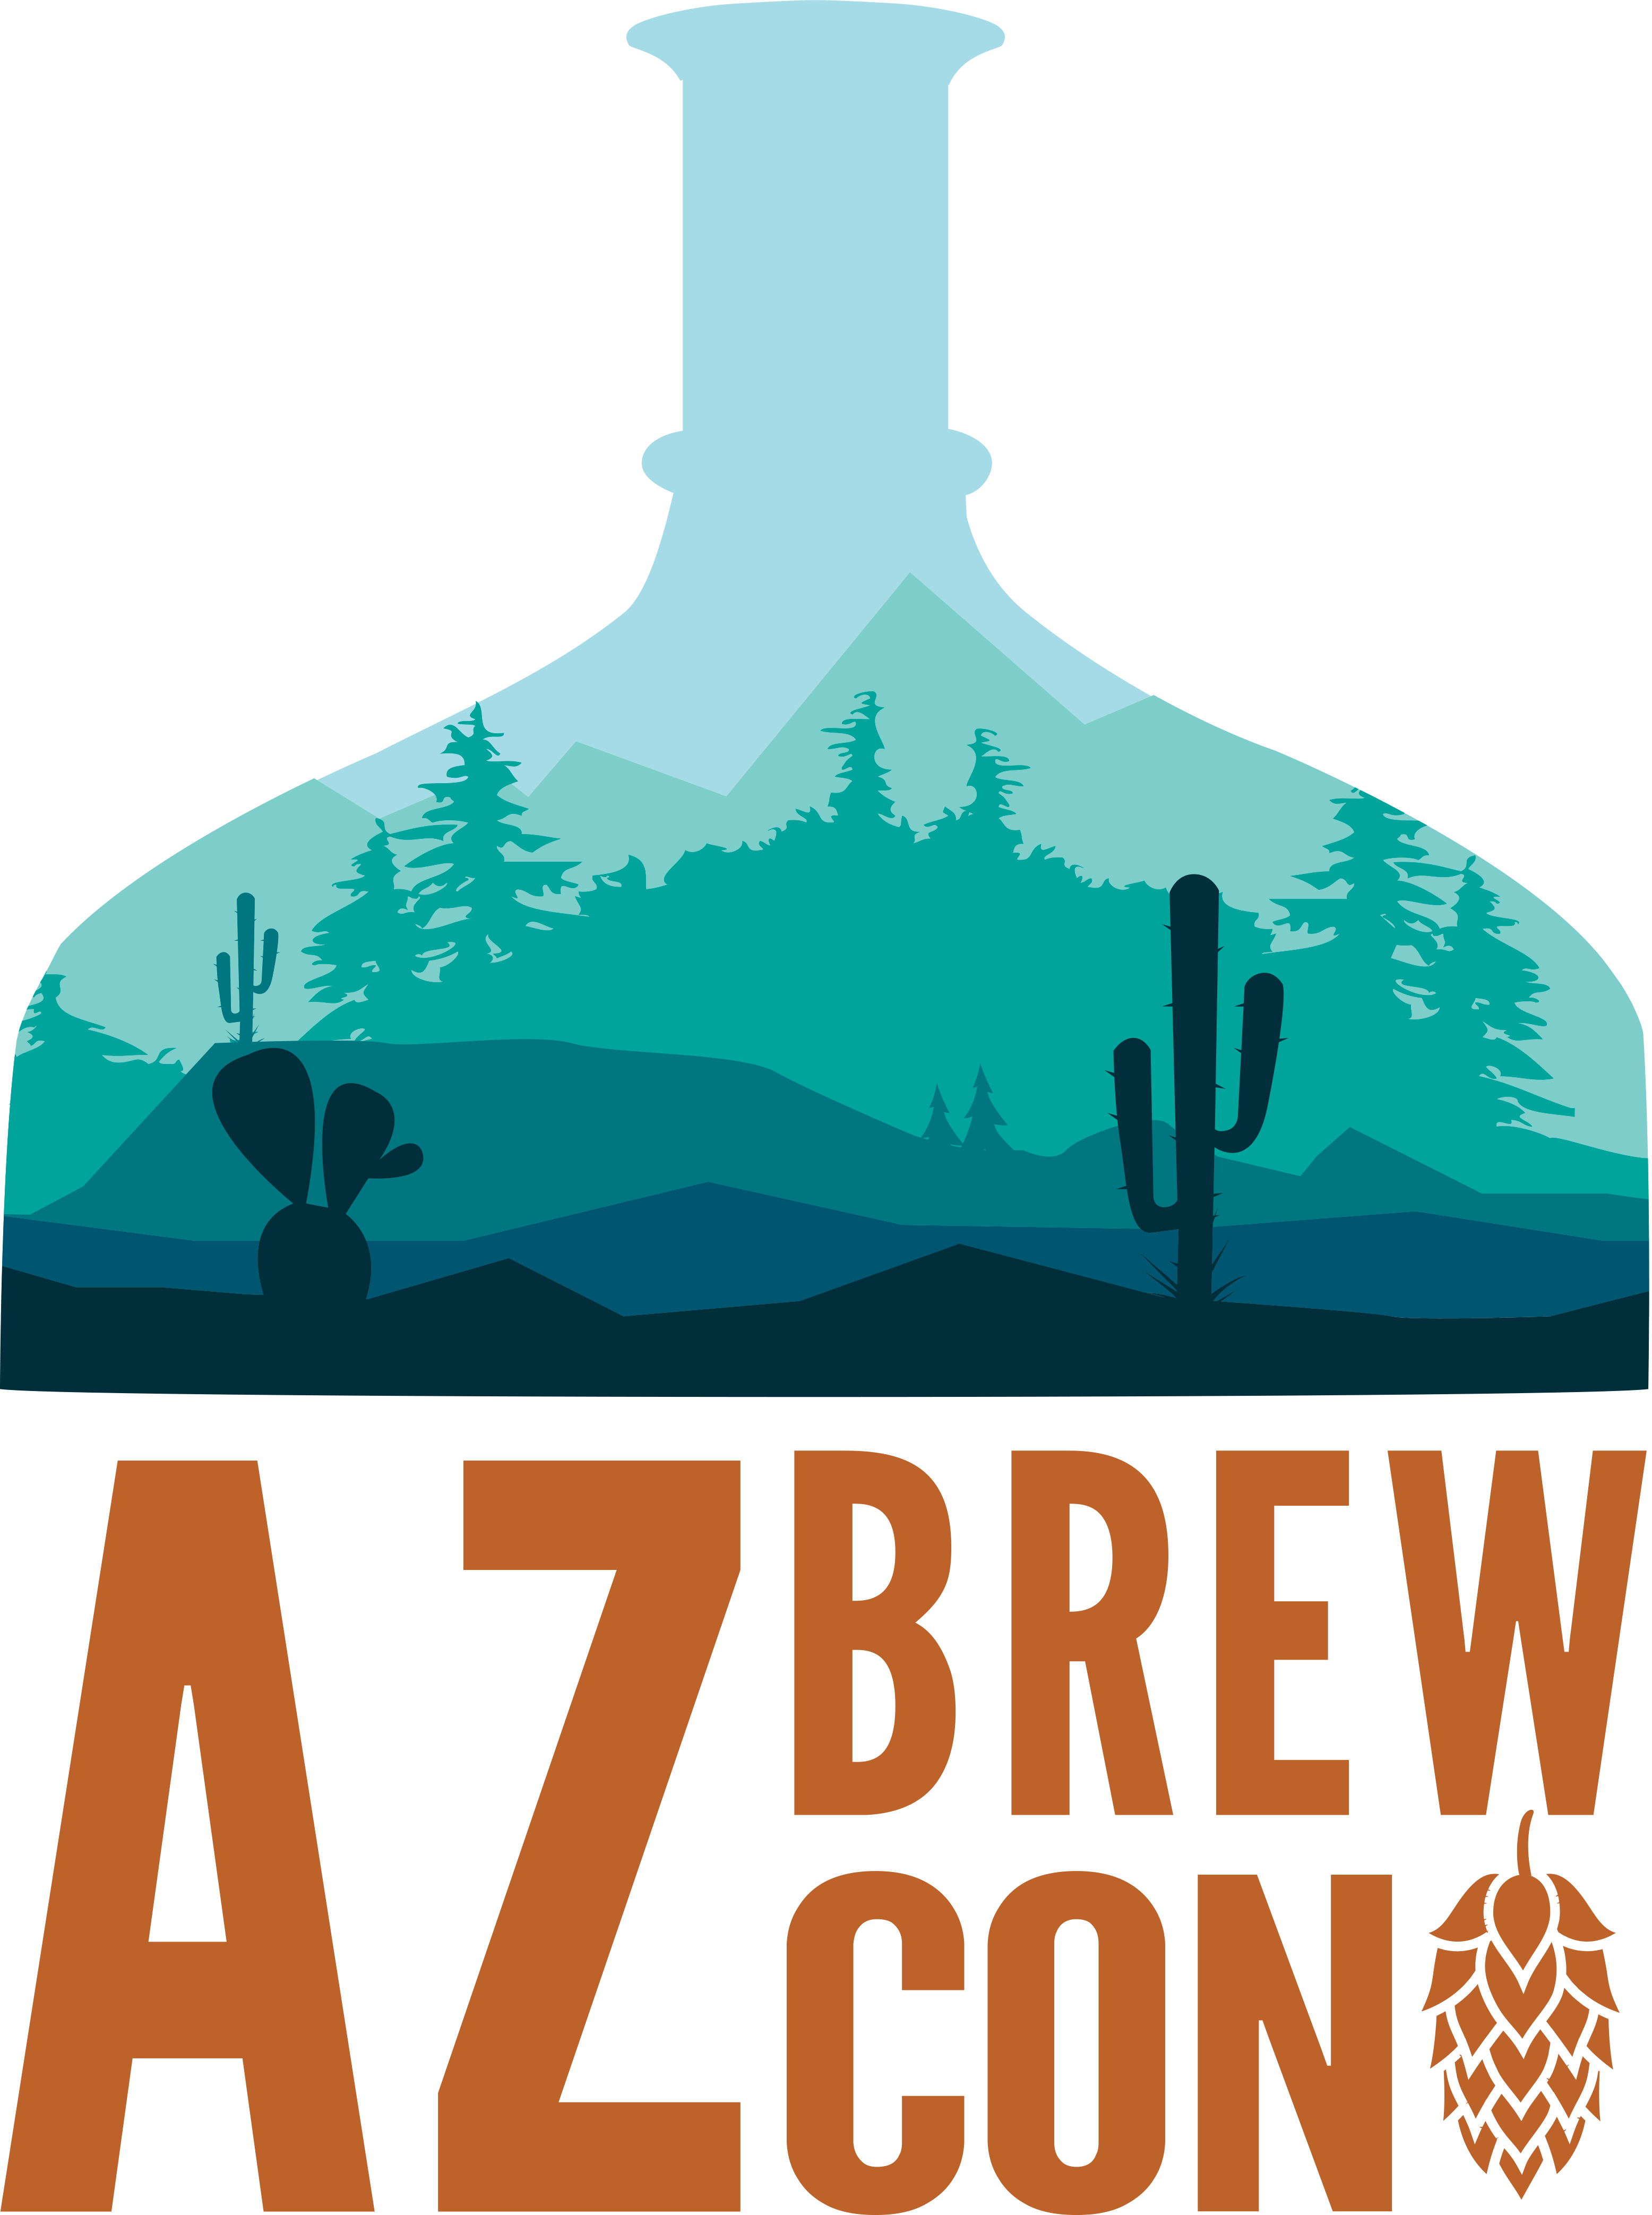 AZBrewCon2019 Conference and Tradeshow